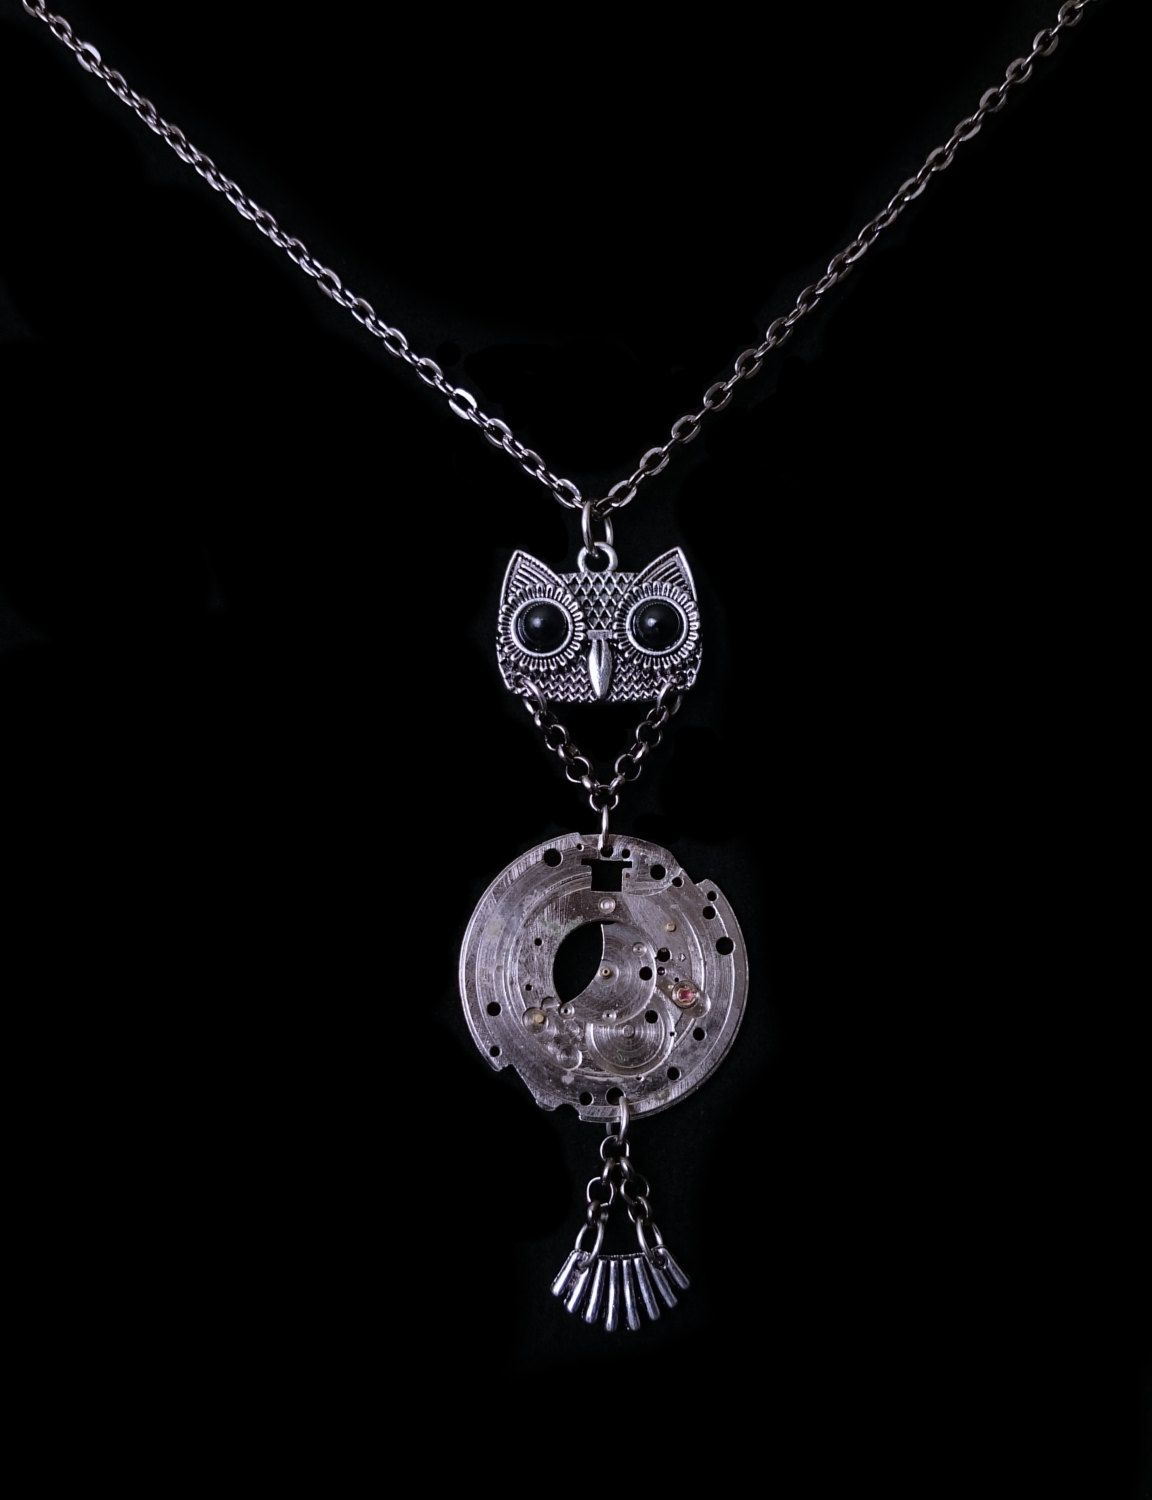 Small Steampunk Owl Necklace - Owl and Crow Seattle Signature Design - Unique Upcycled Timepieces - by owlandcrowseattle on Etsy